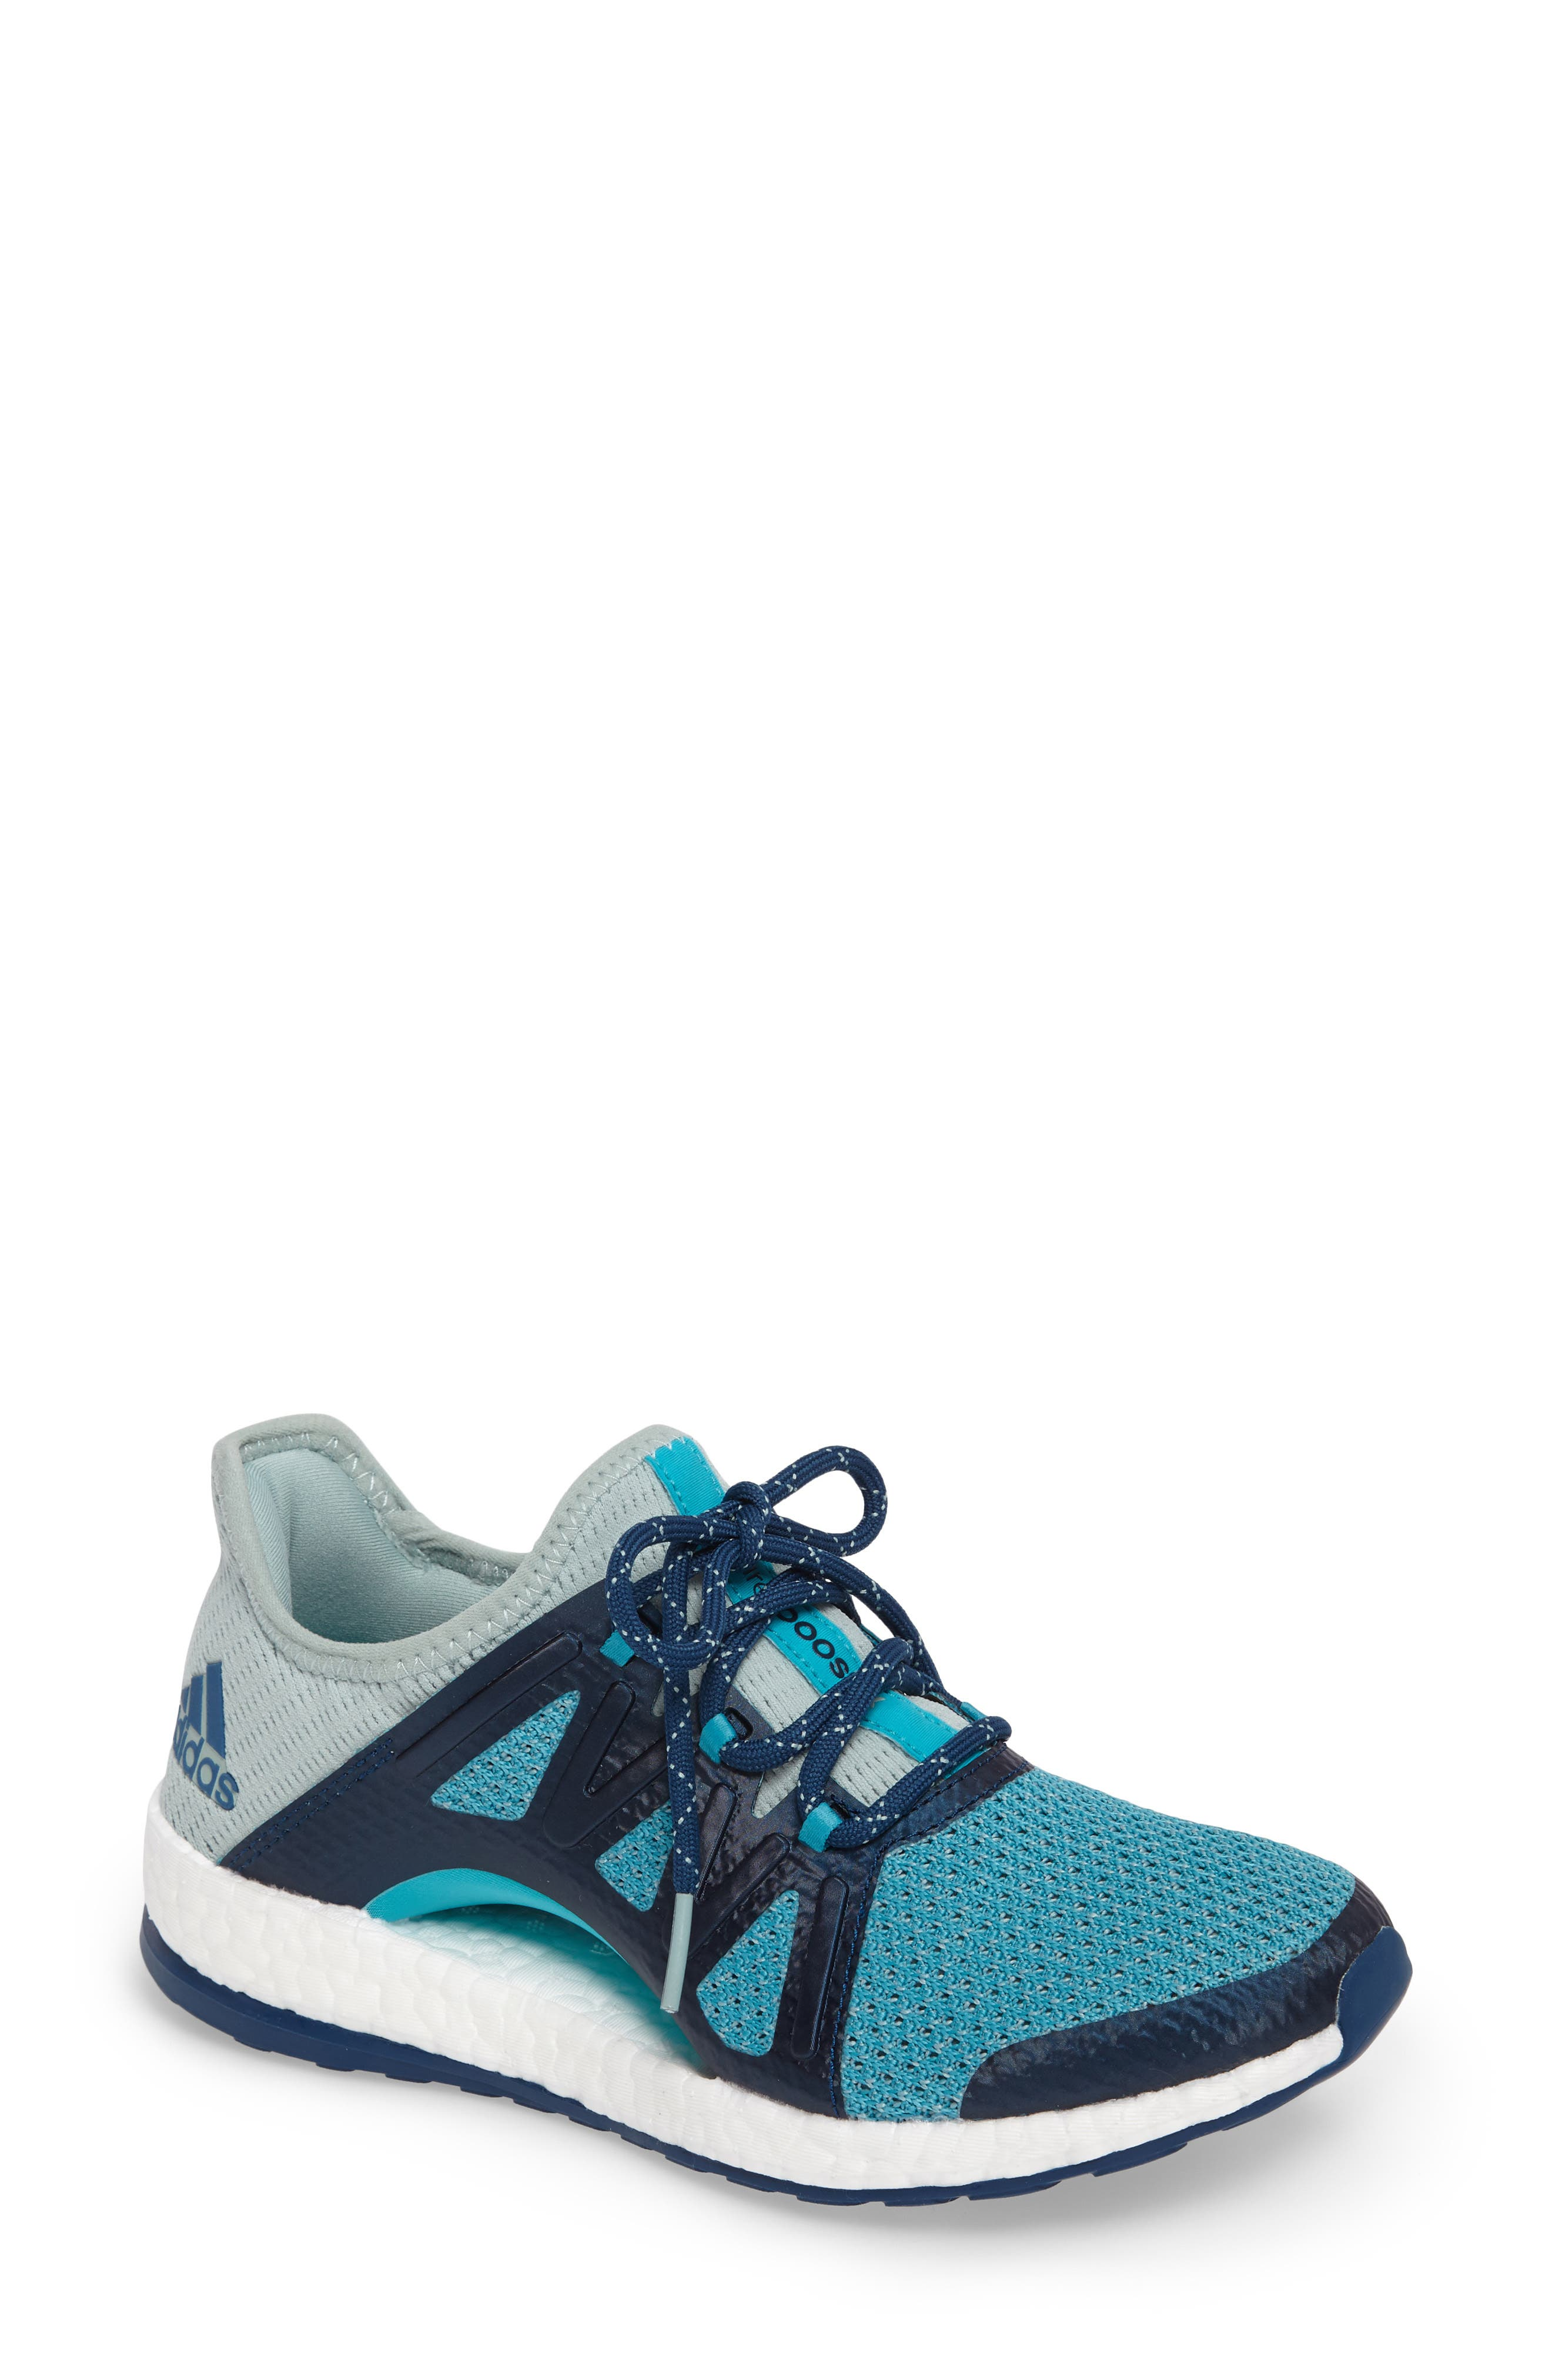 PureBOOST Xpose Running Shoe,                         Main,                         color, Tactile Green/ Energy Blue